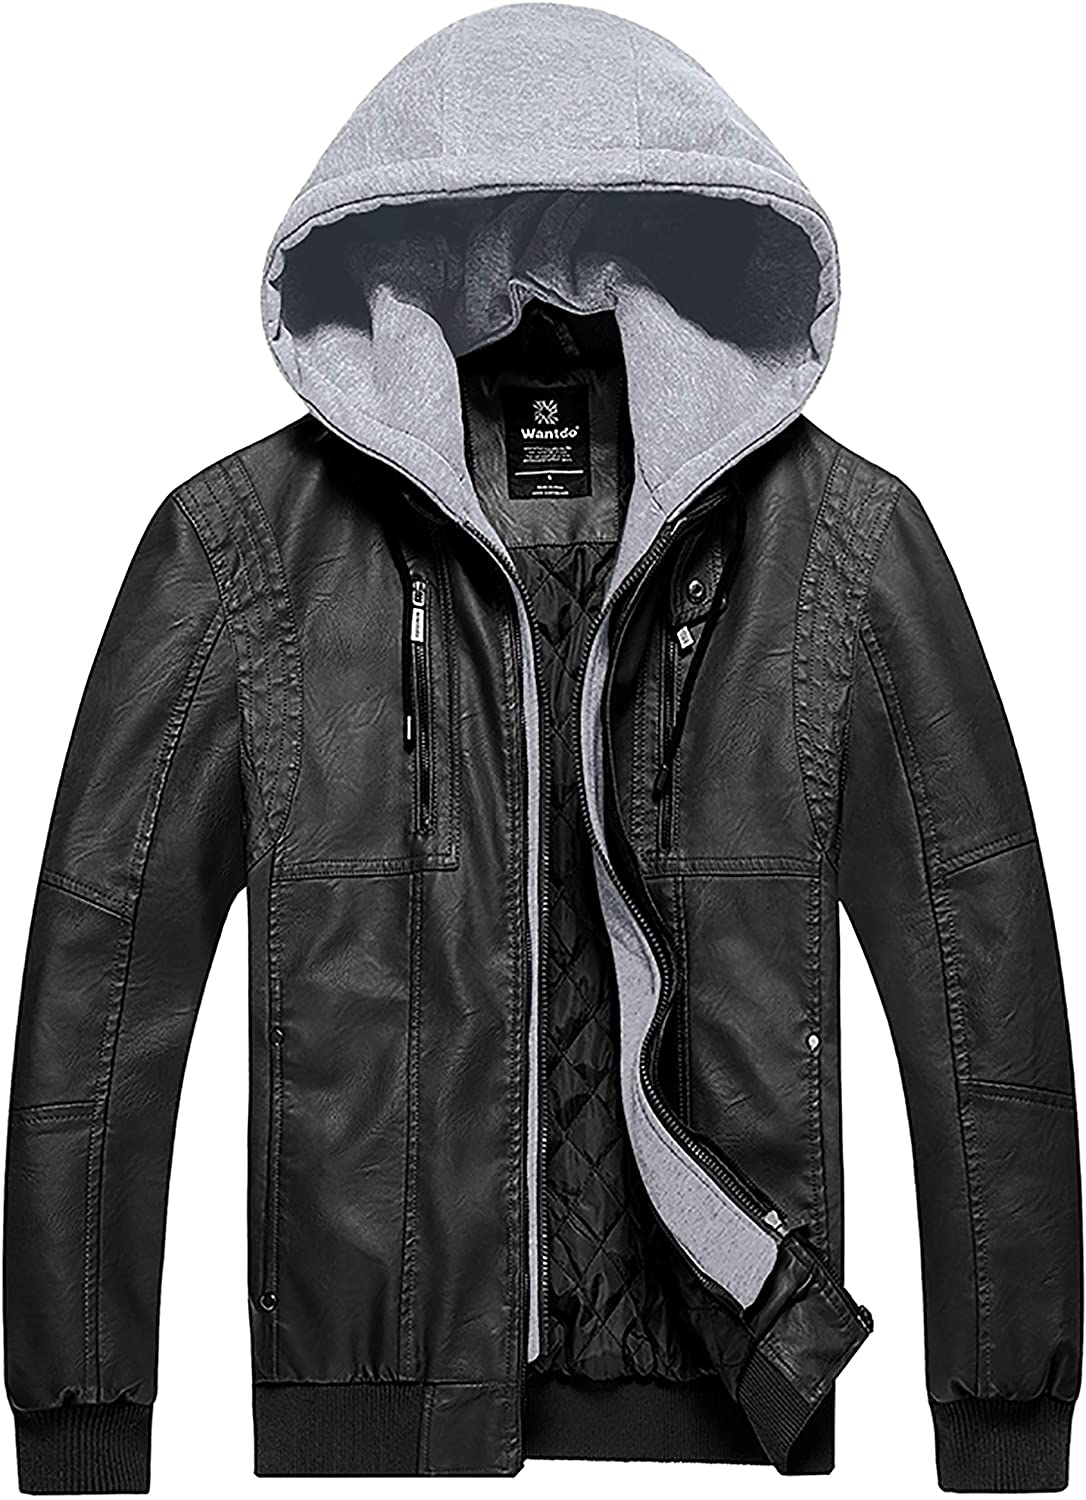 Wantdo Mens Faux Leather Jacket Moto Jacket PU Warm Coat with Removable Hood